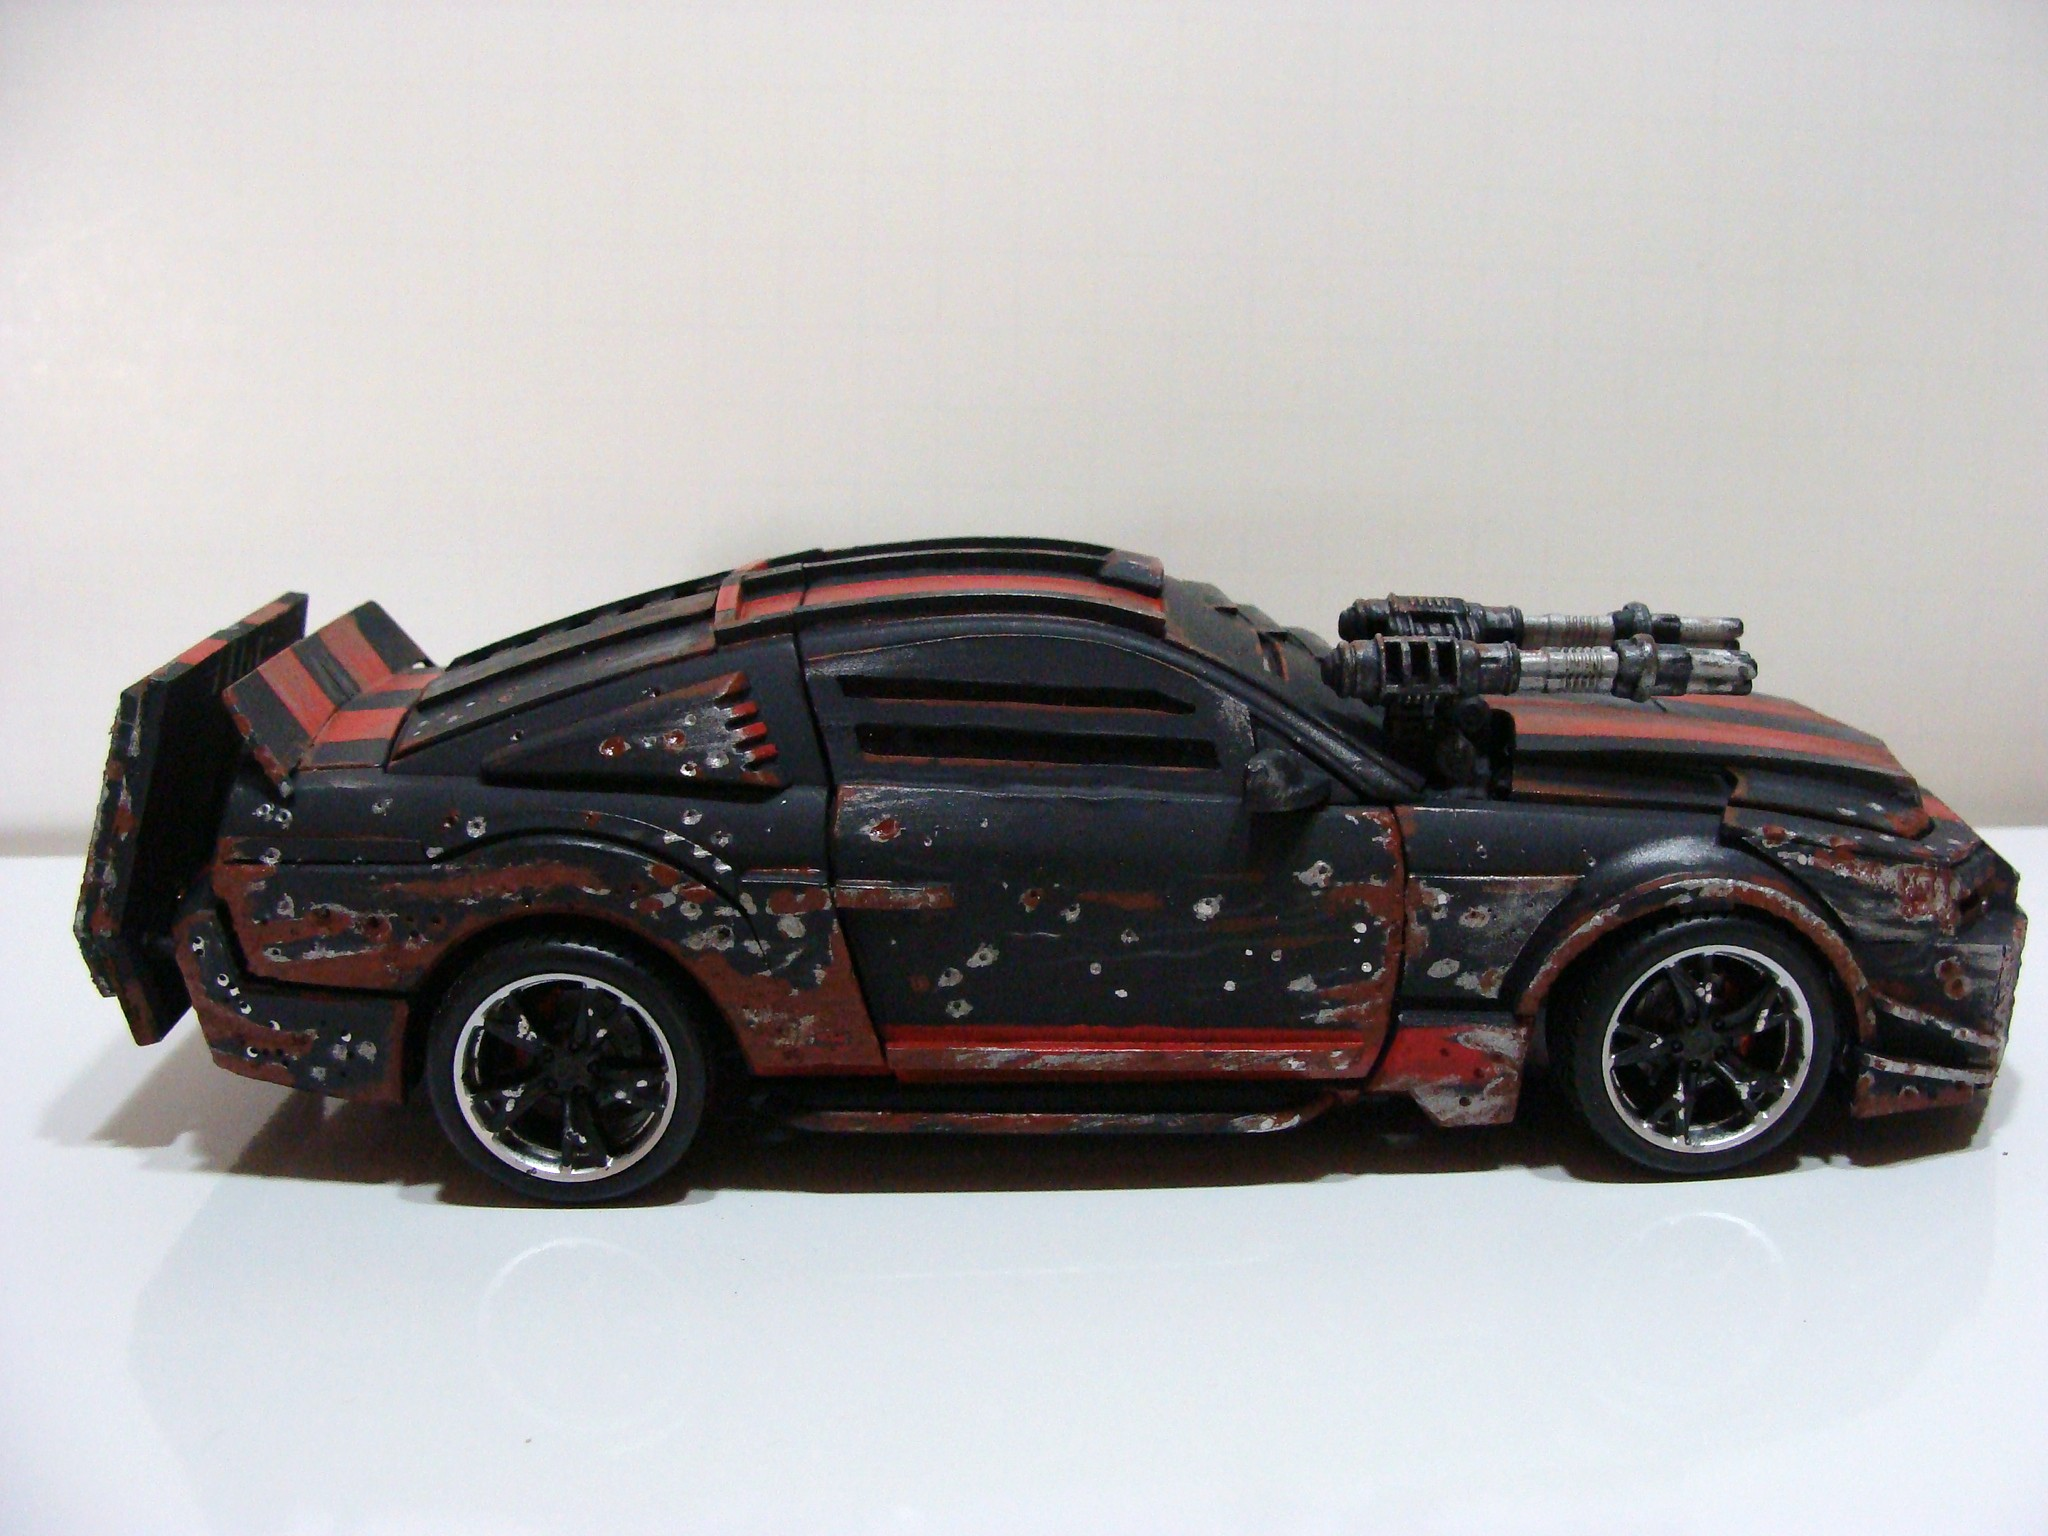 Death Race Mustang custom Alt. Batttle Damaged. - TFW2005.com